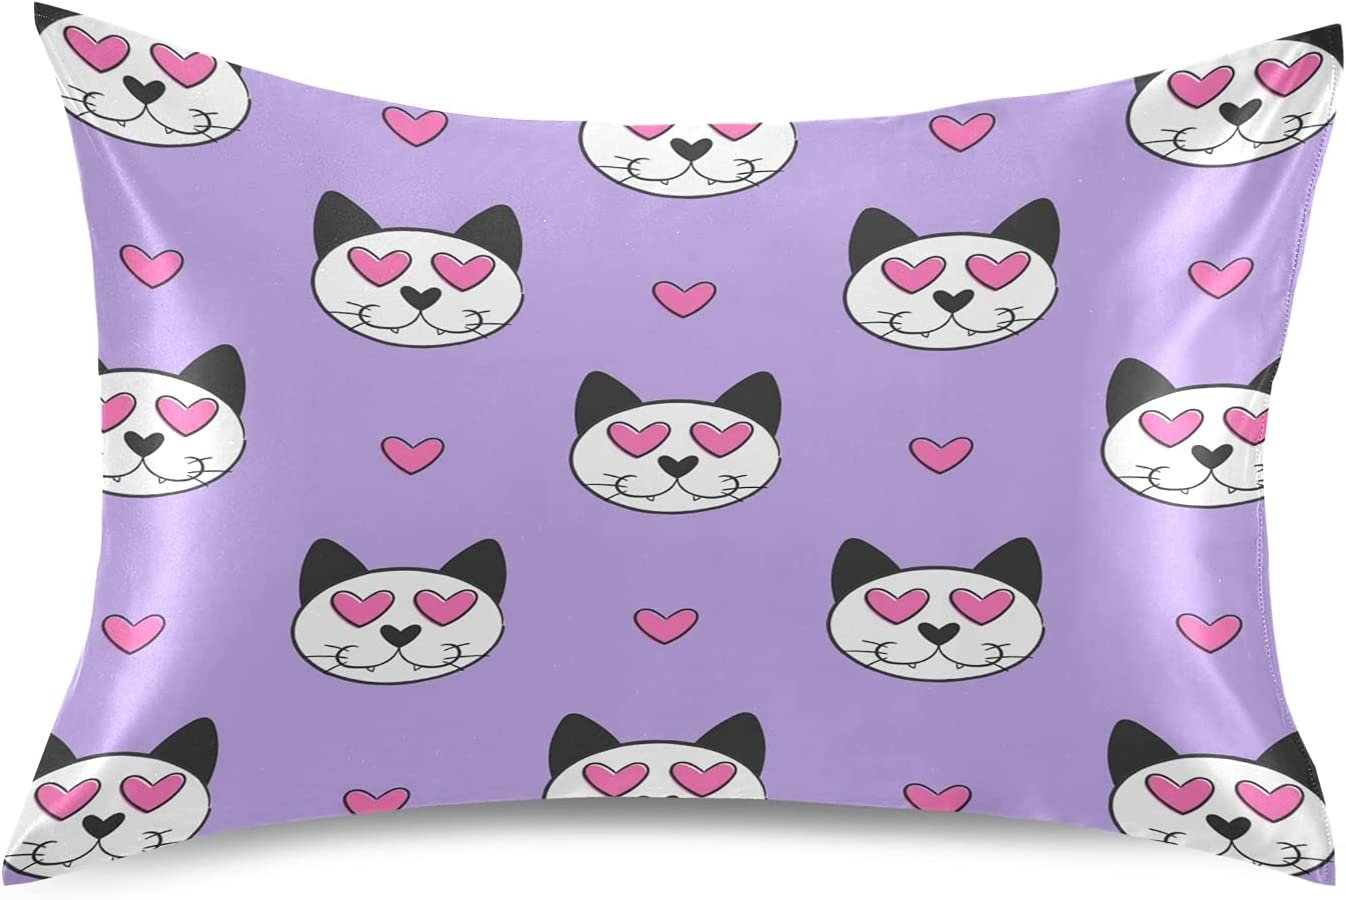 Cute Baby Heart Be super welcome Cat Pillowcase Case Covers Pillow Protector Soft Challenge the lowest price